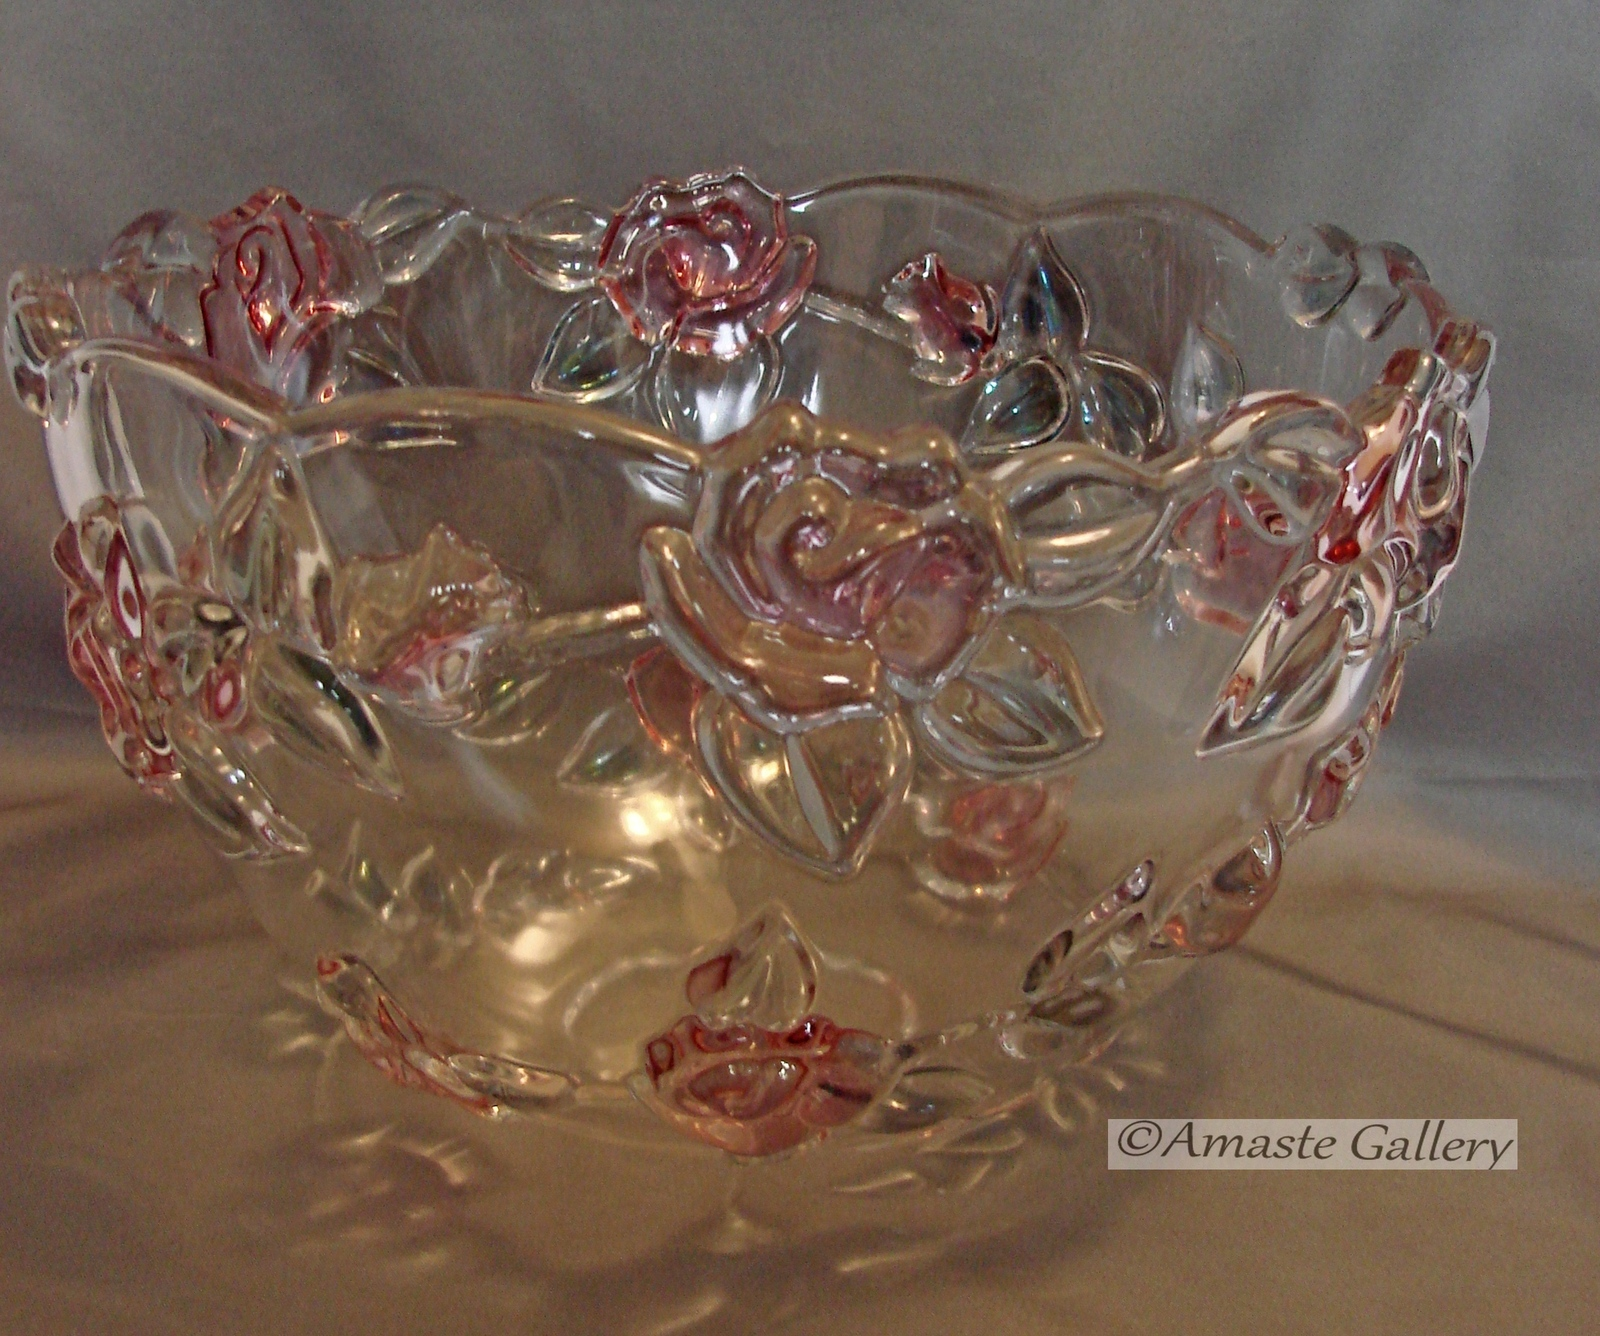 Primary image for Mikasa Centerpiece Table Bowl with Raised Roses and Leaves